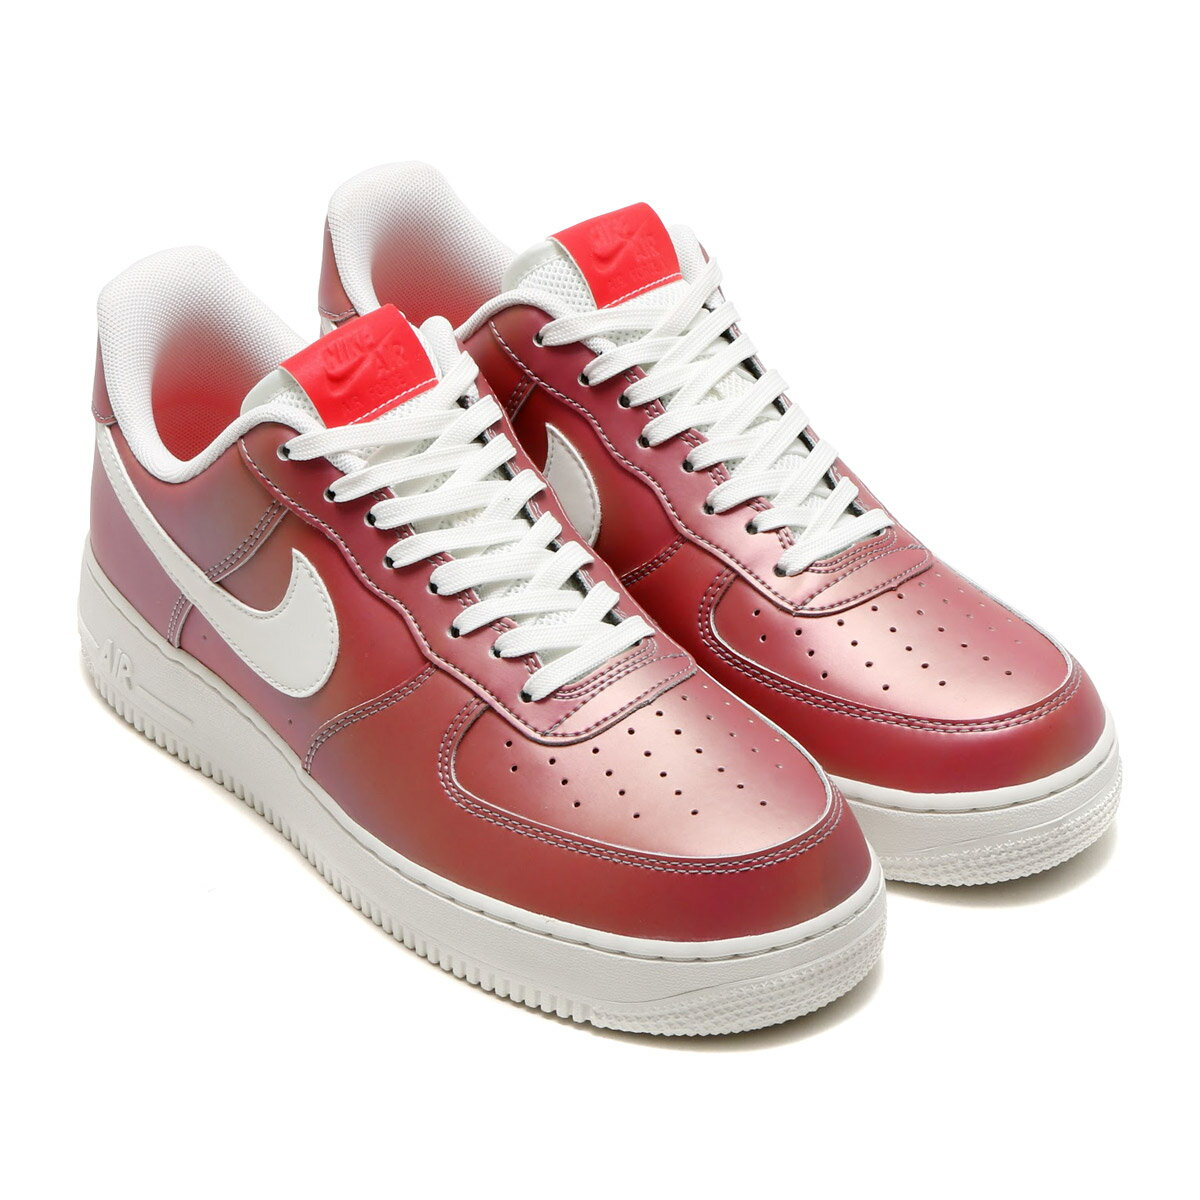 NIKE AIR FORCE 1 '07 LV8(ナイキ エア フォース 1 07 LV8)TRACK RED/SUMMIT WHITE-BLACK17SU-S